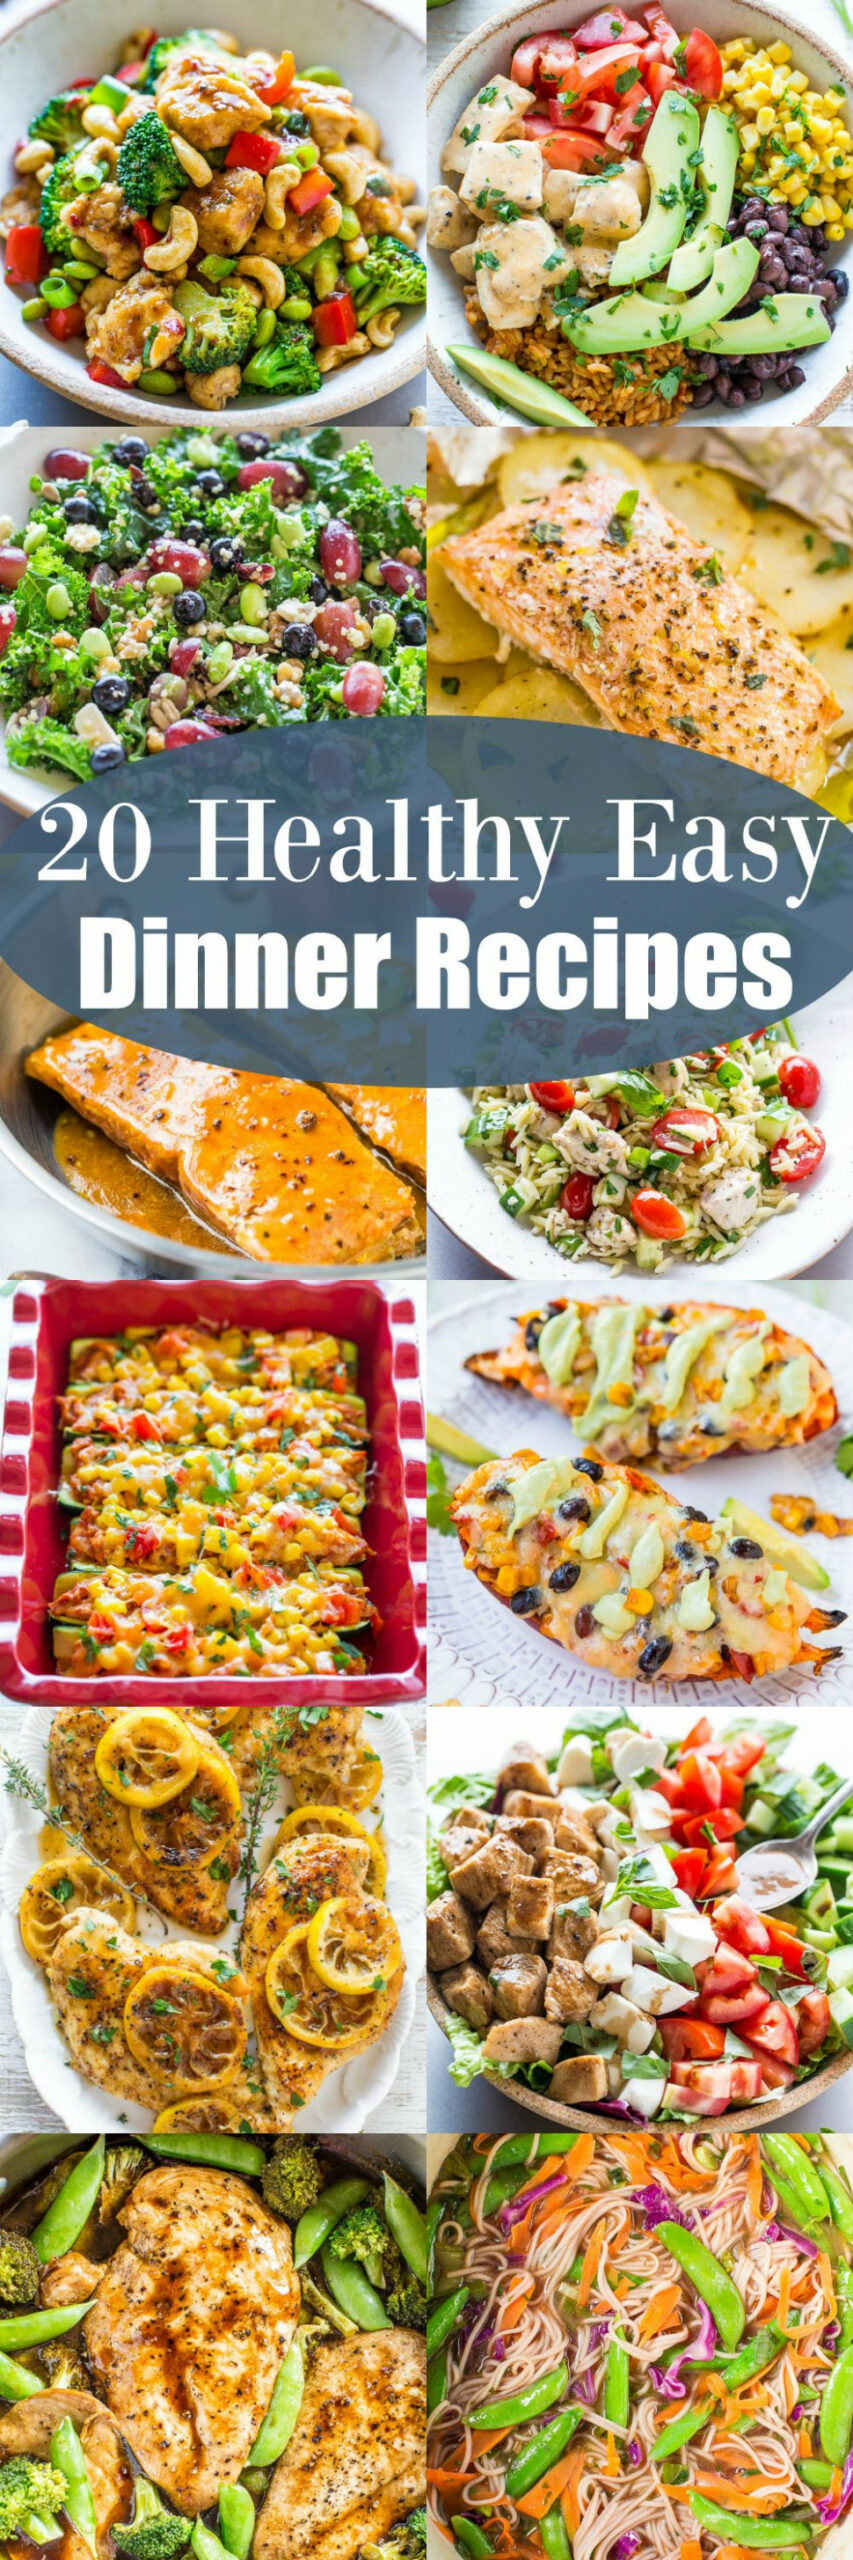 20 Healthy Easy Dinner Recipes - Looking for healthy, easy ..